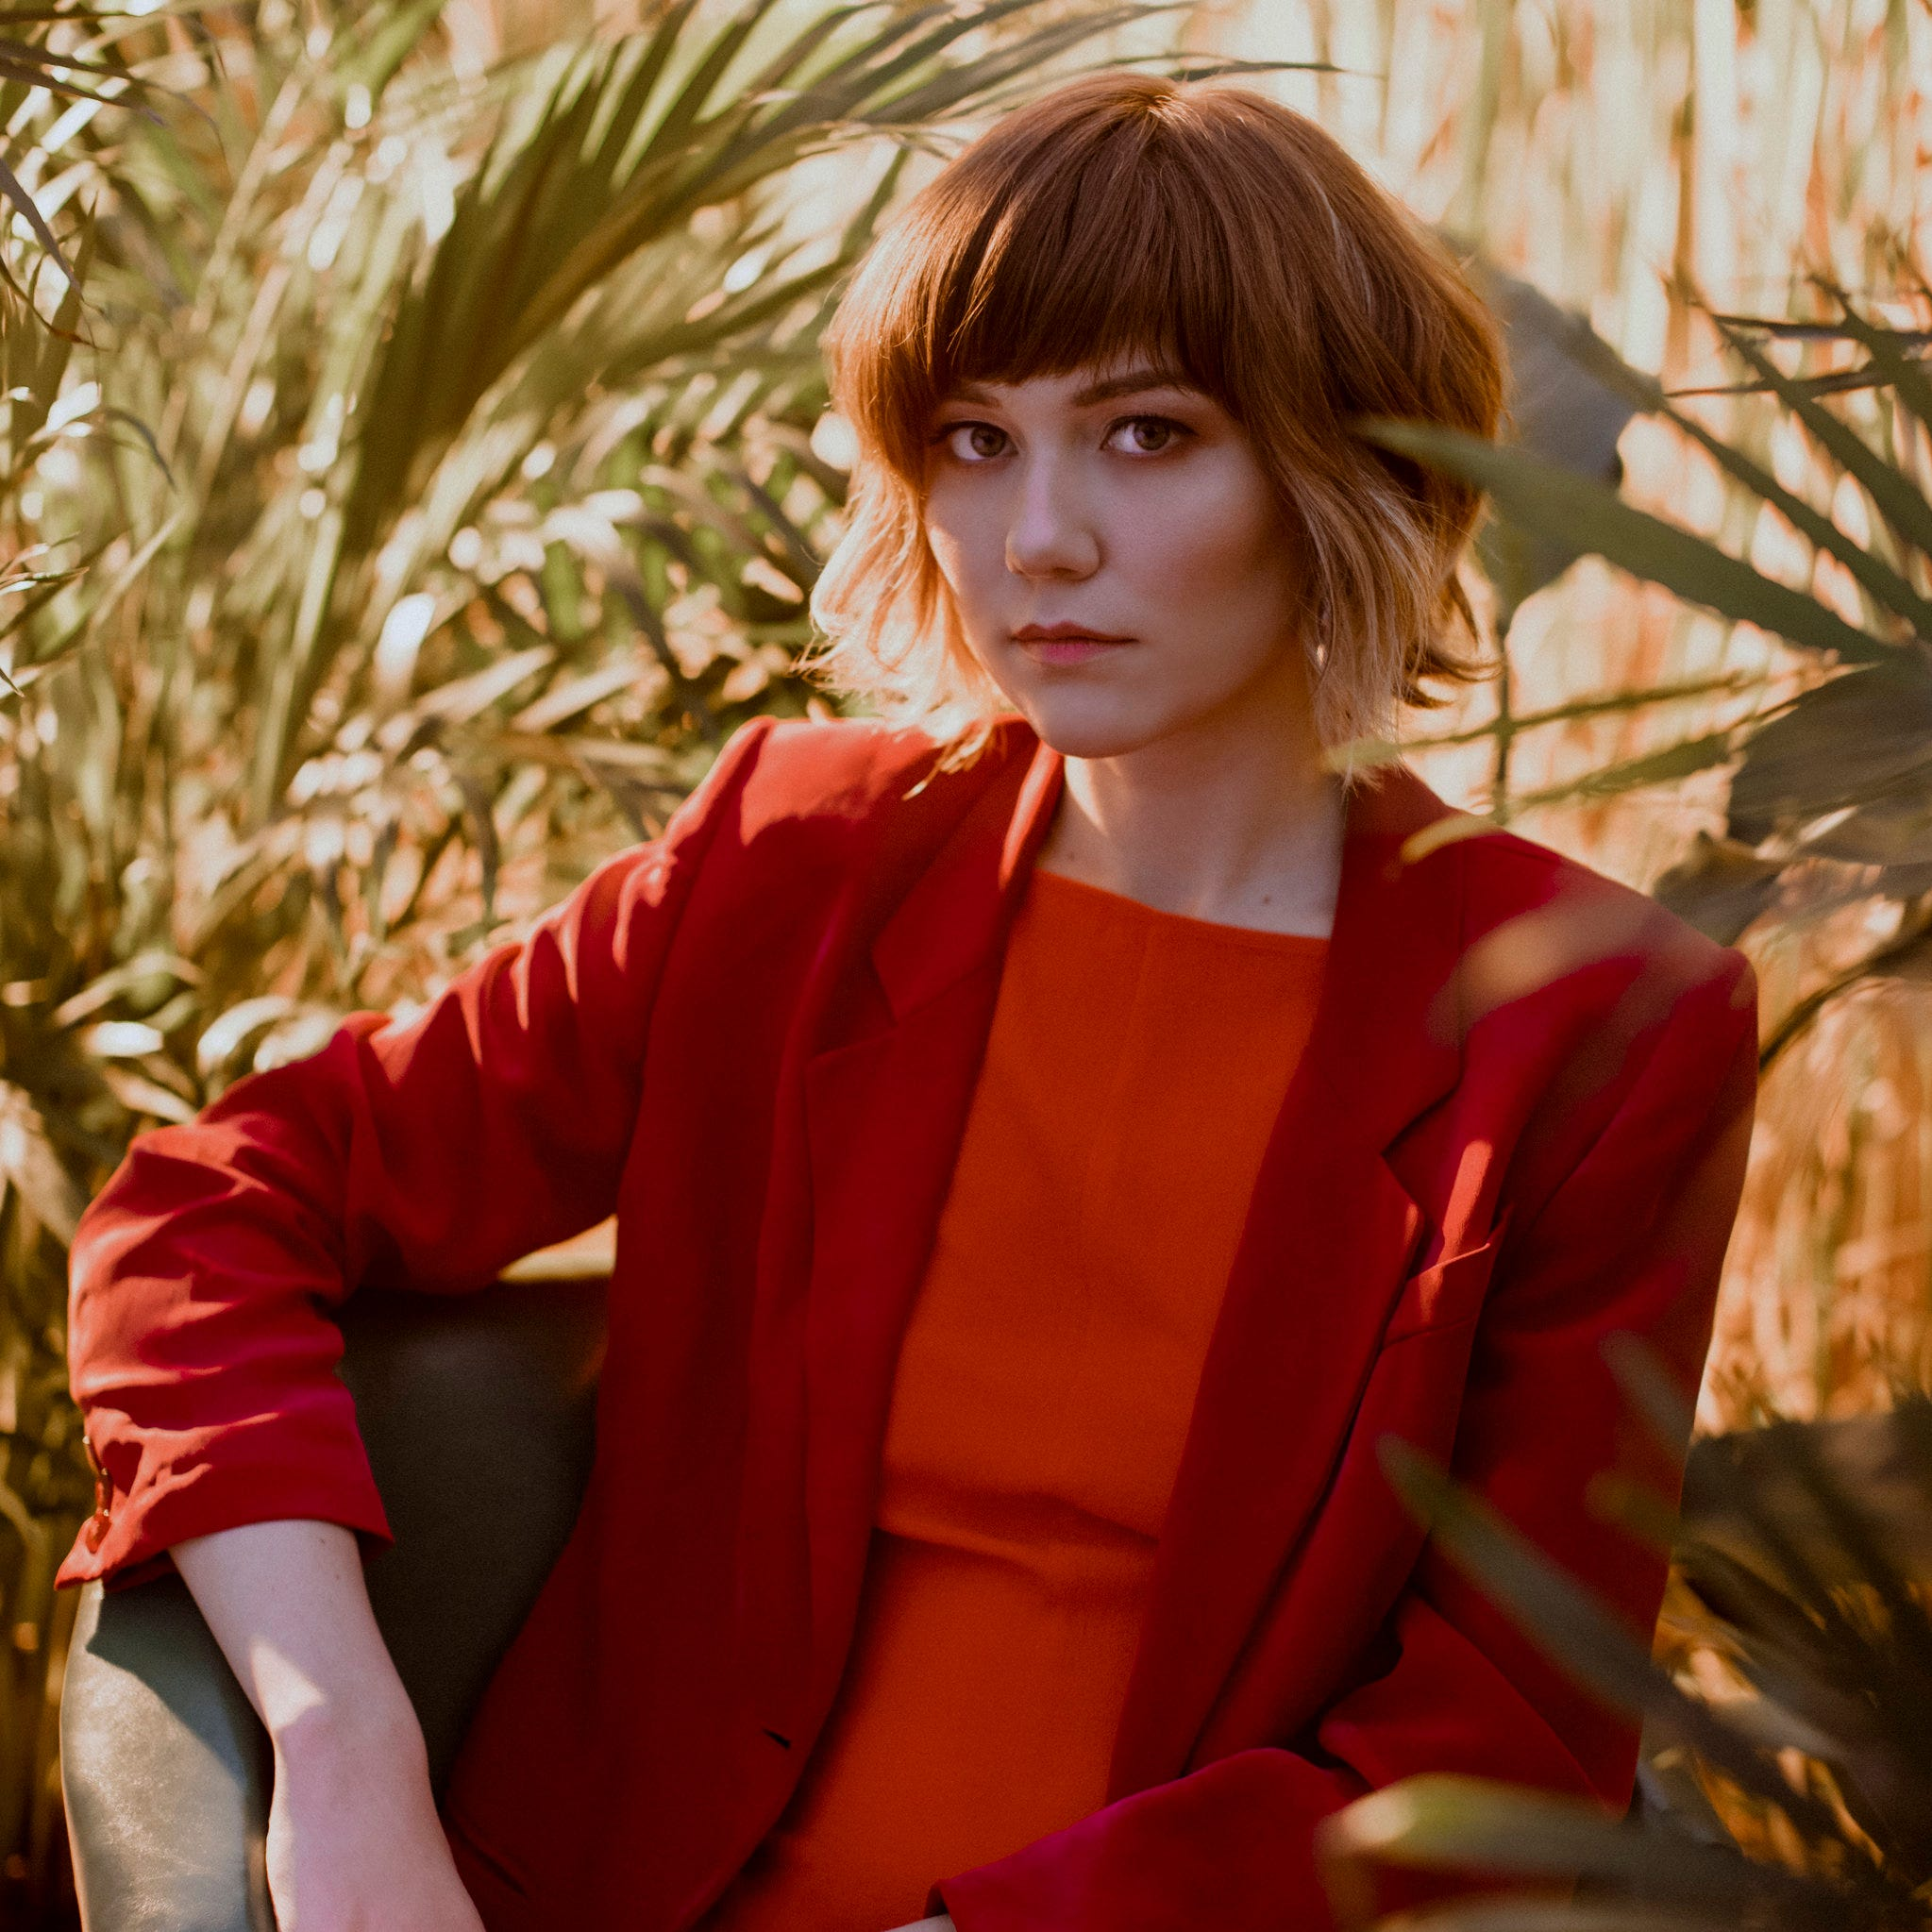 Molly Tuttle, award-winning guitarist, is 'Ready' to strike out on her own